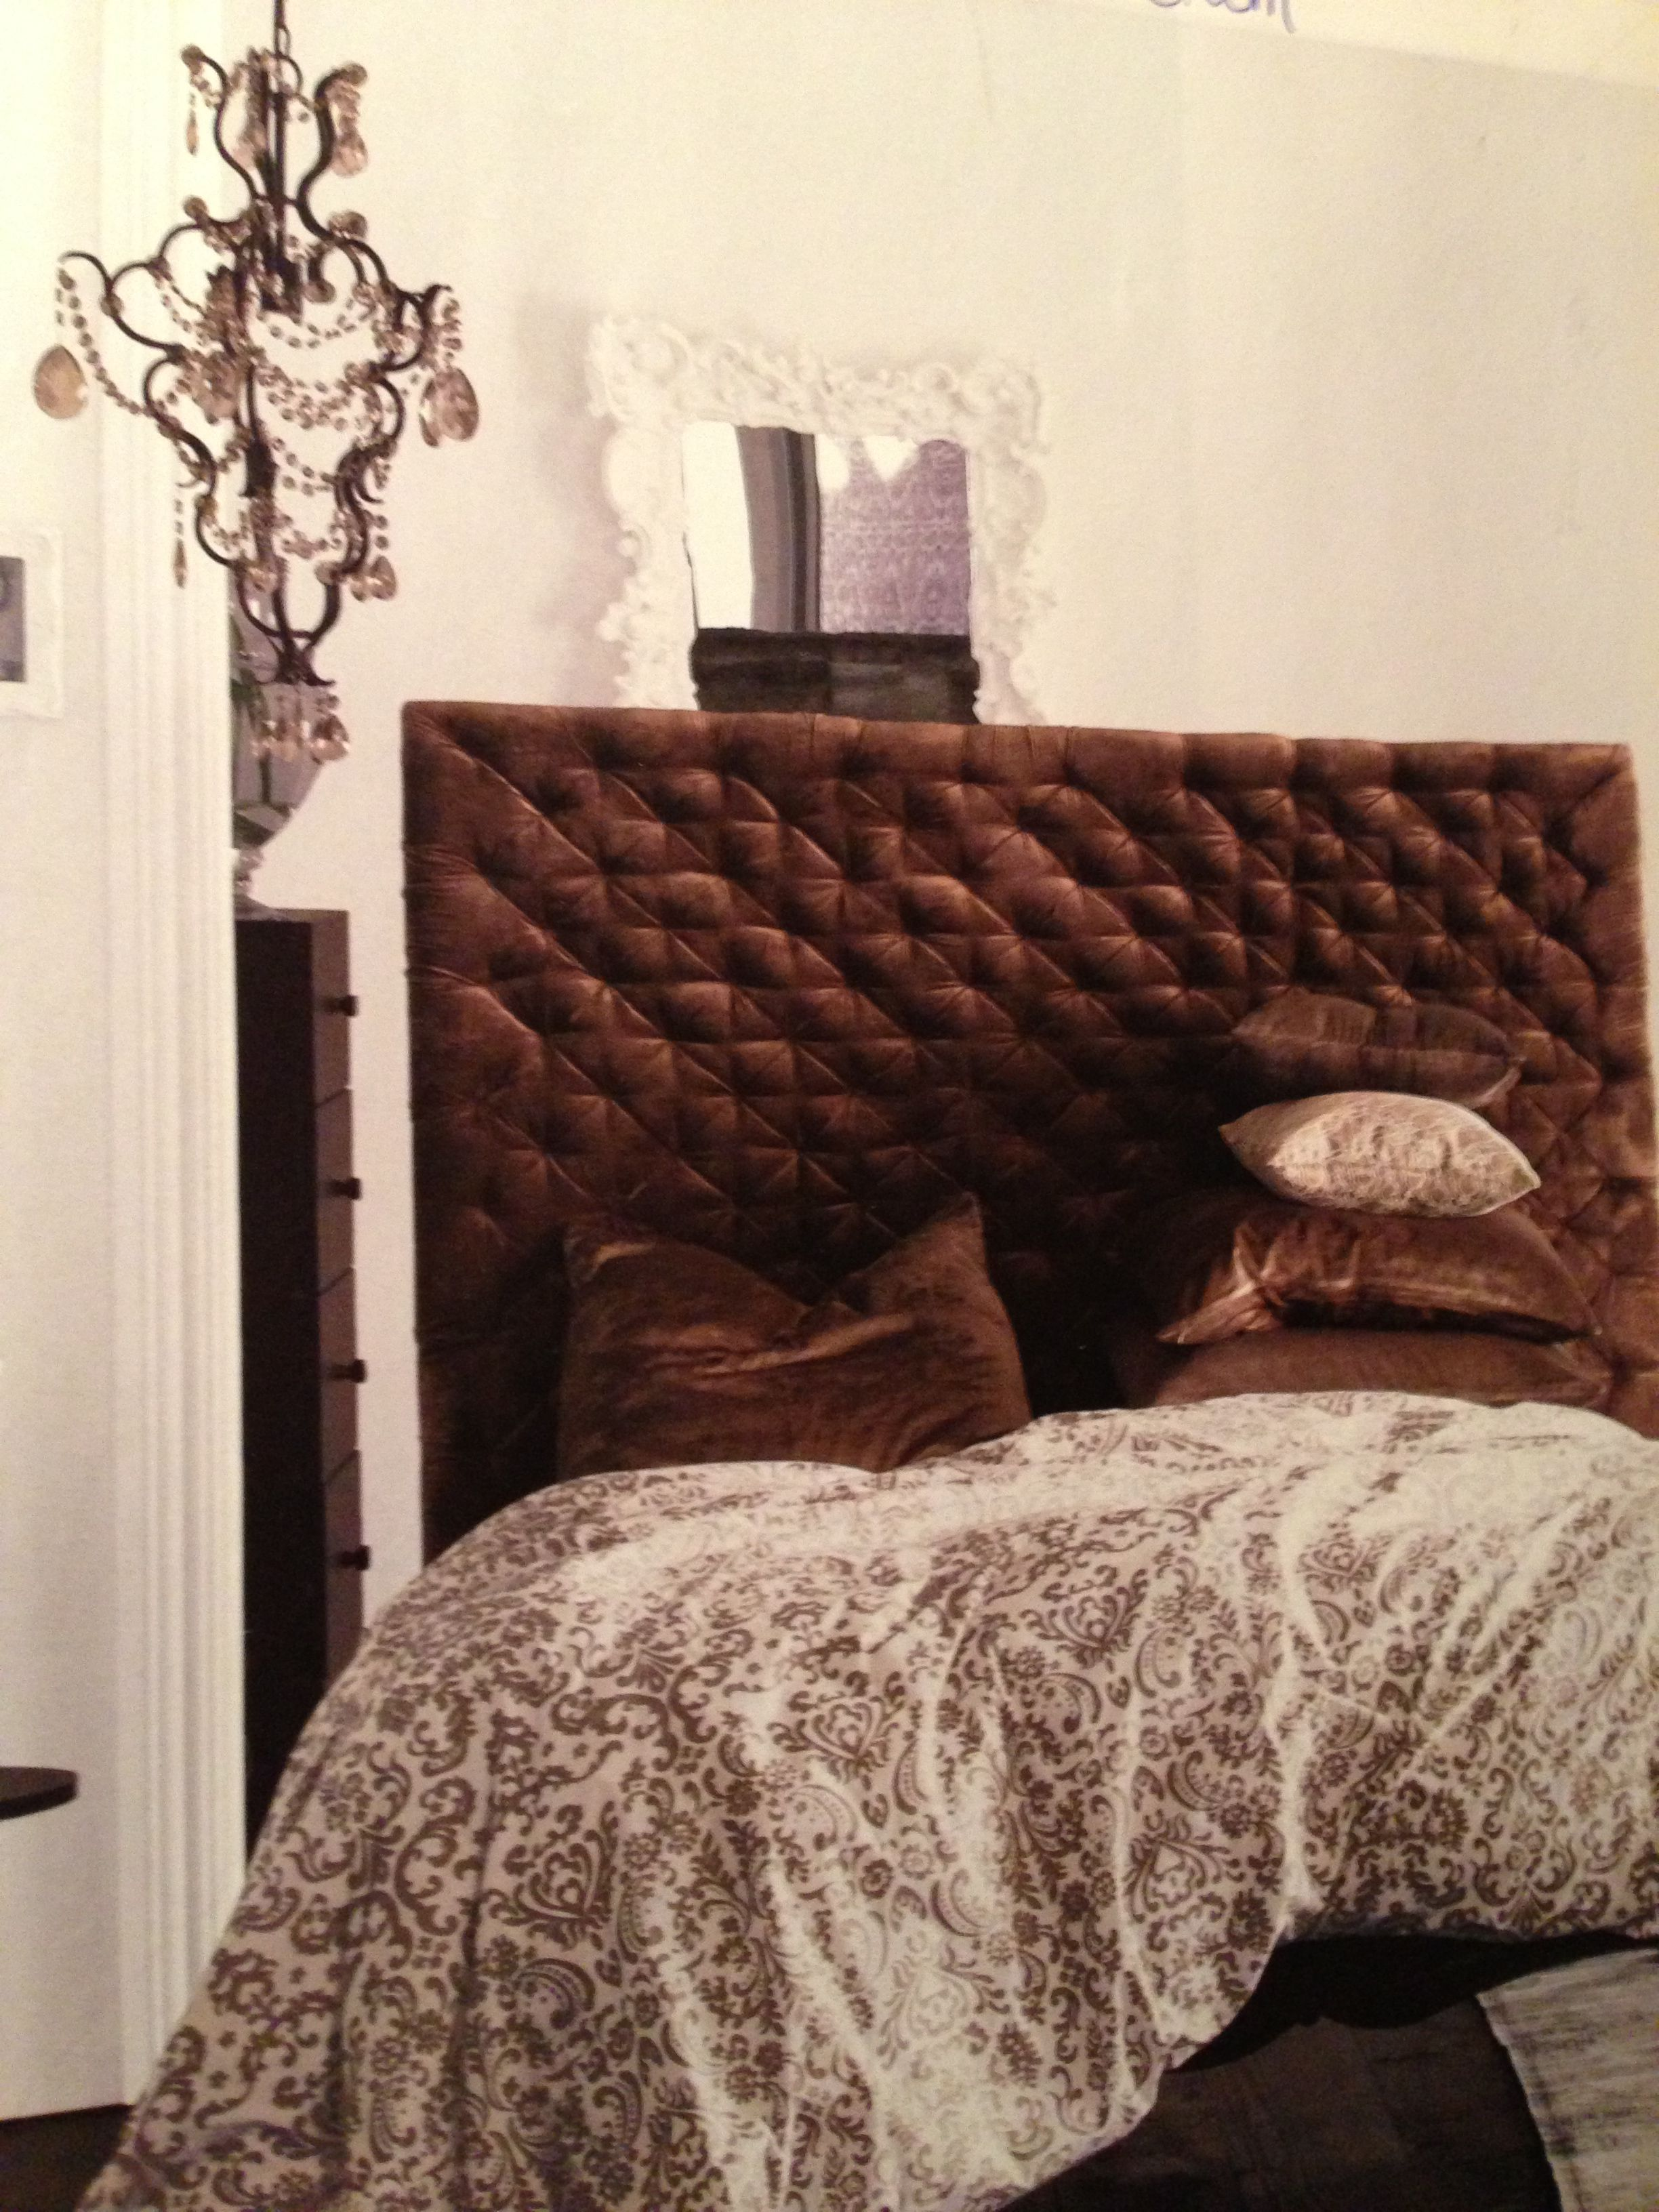 Explore Headboards And More